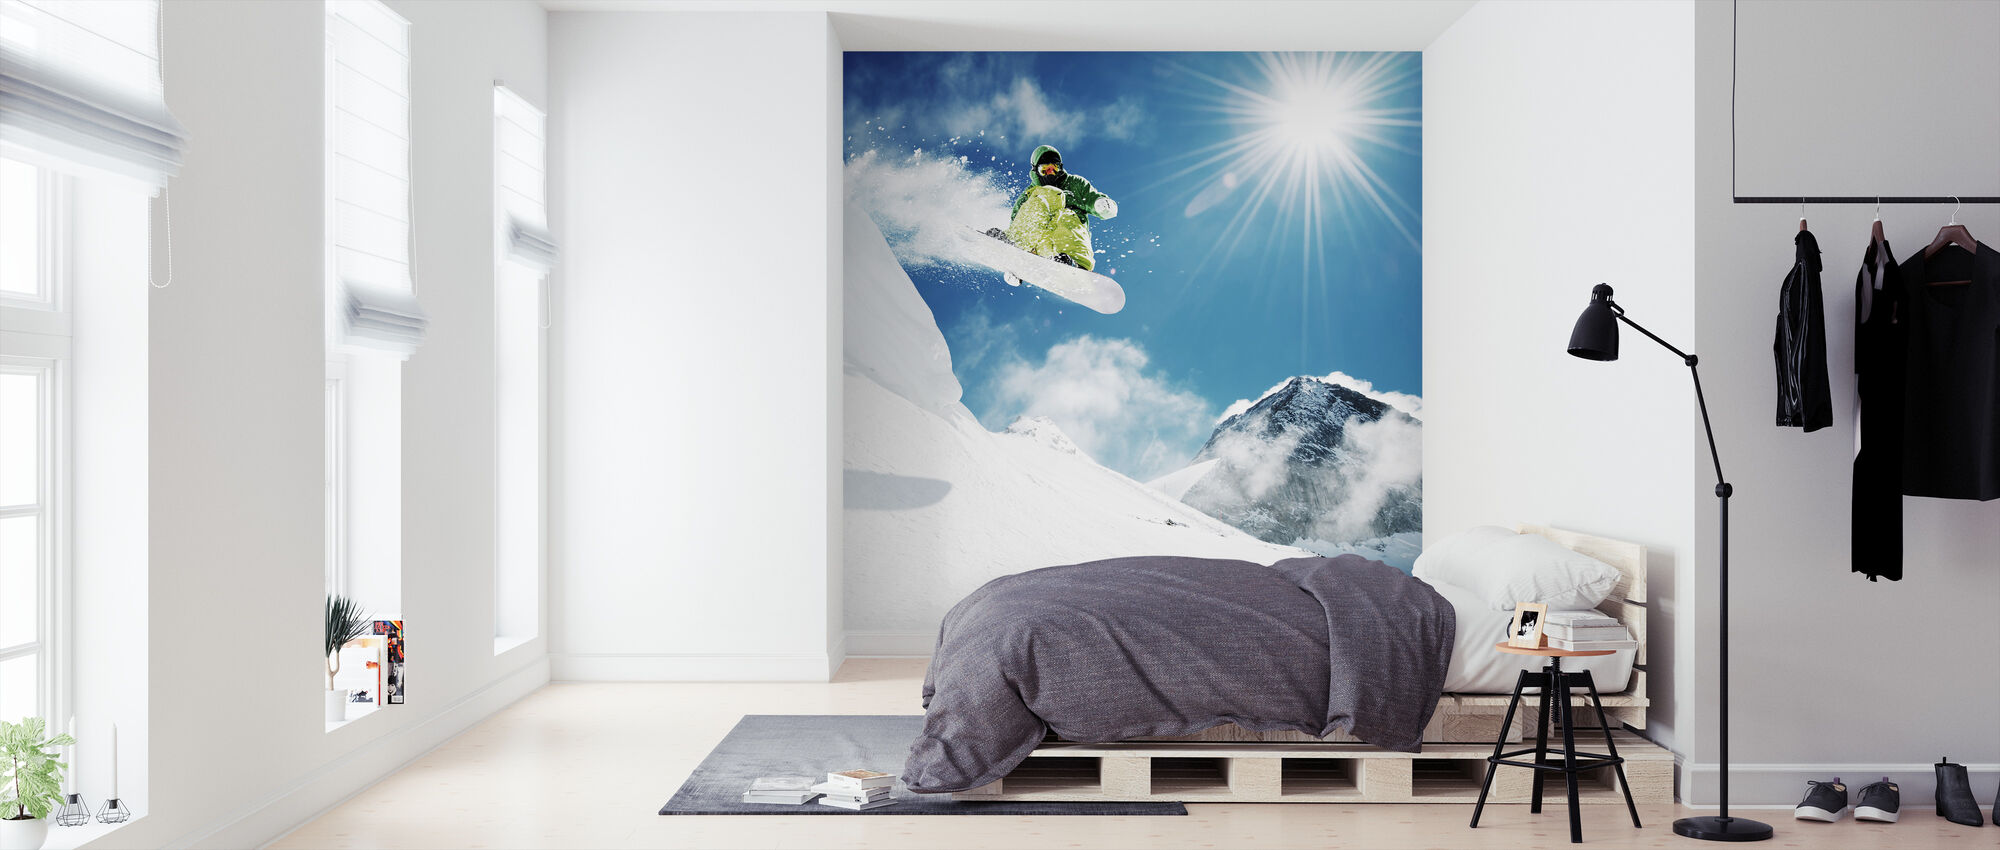 Snowboarder at Jump - Wallpaper - Bedroom